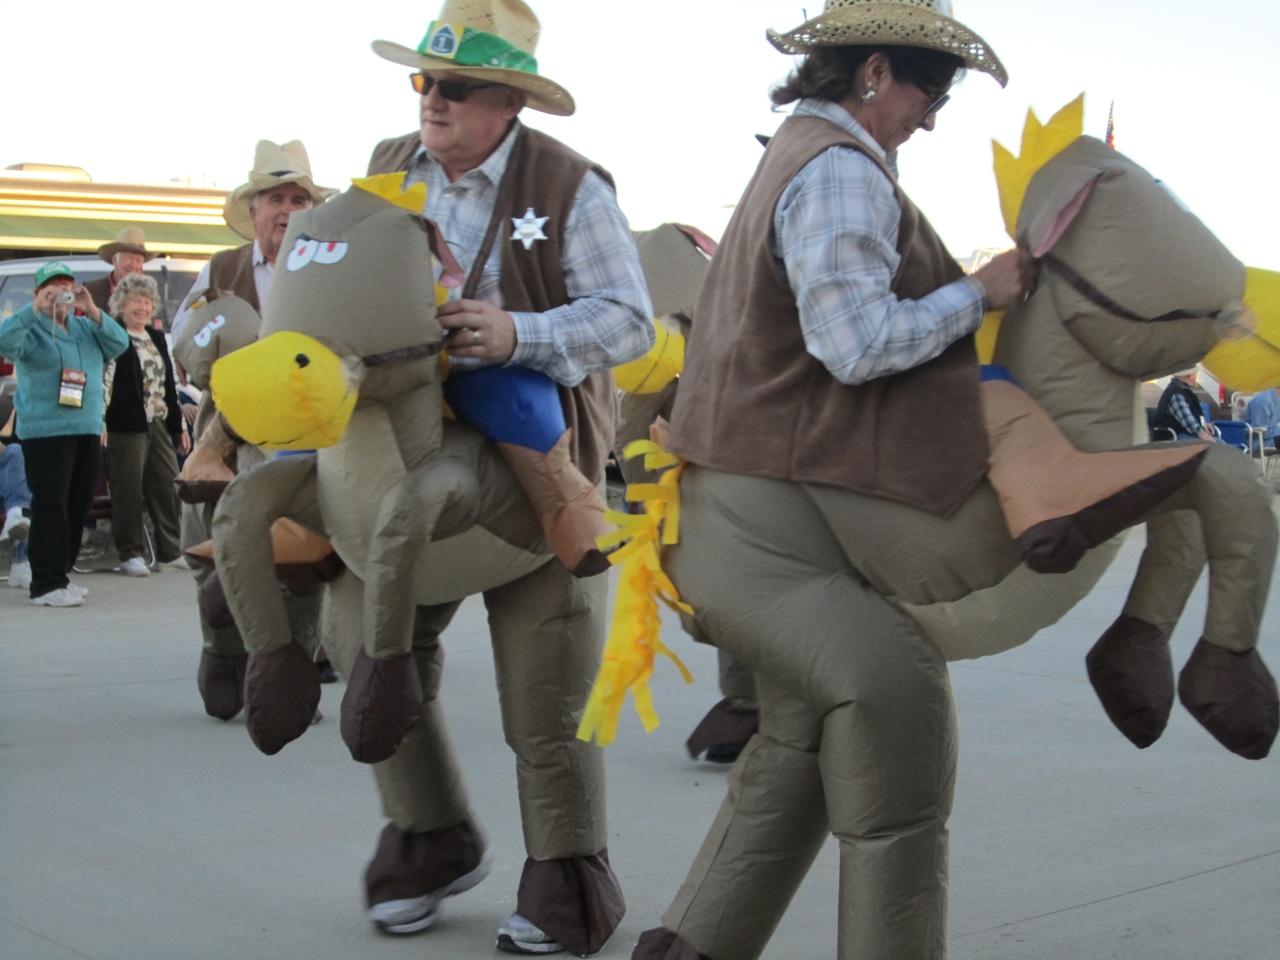 """People In The Parade On Their """"Horses"""""""